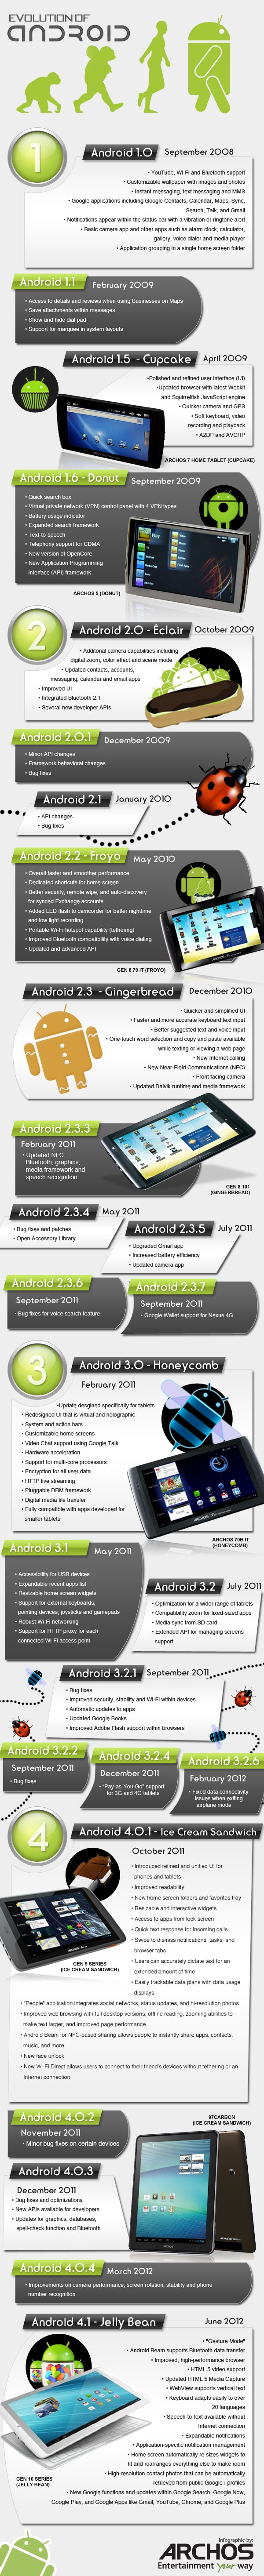 evolution-of-android